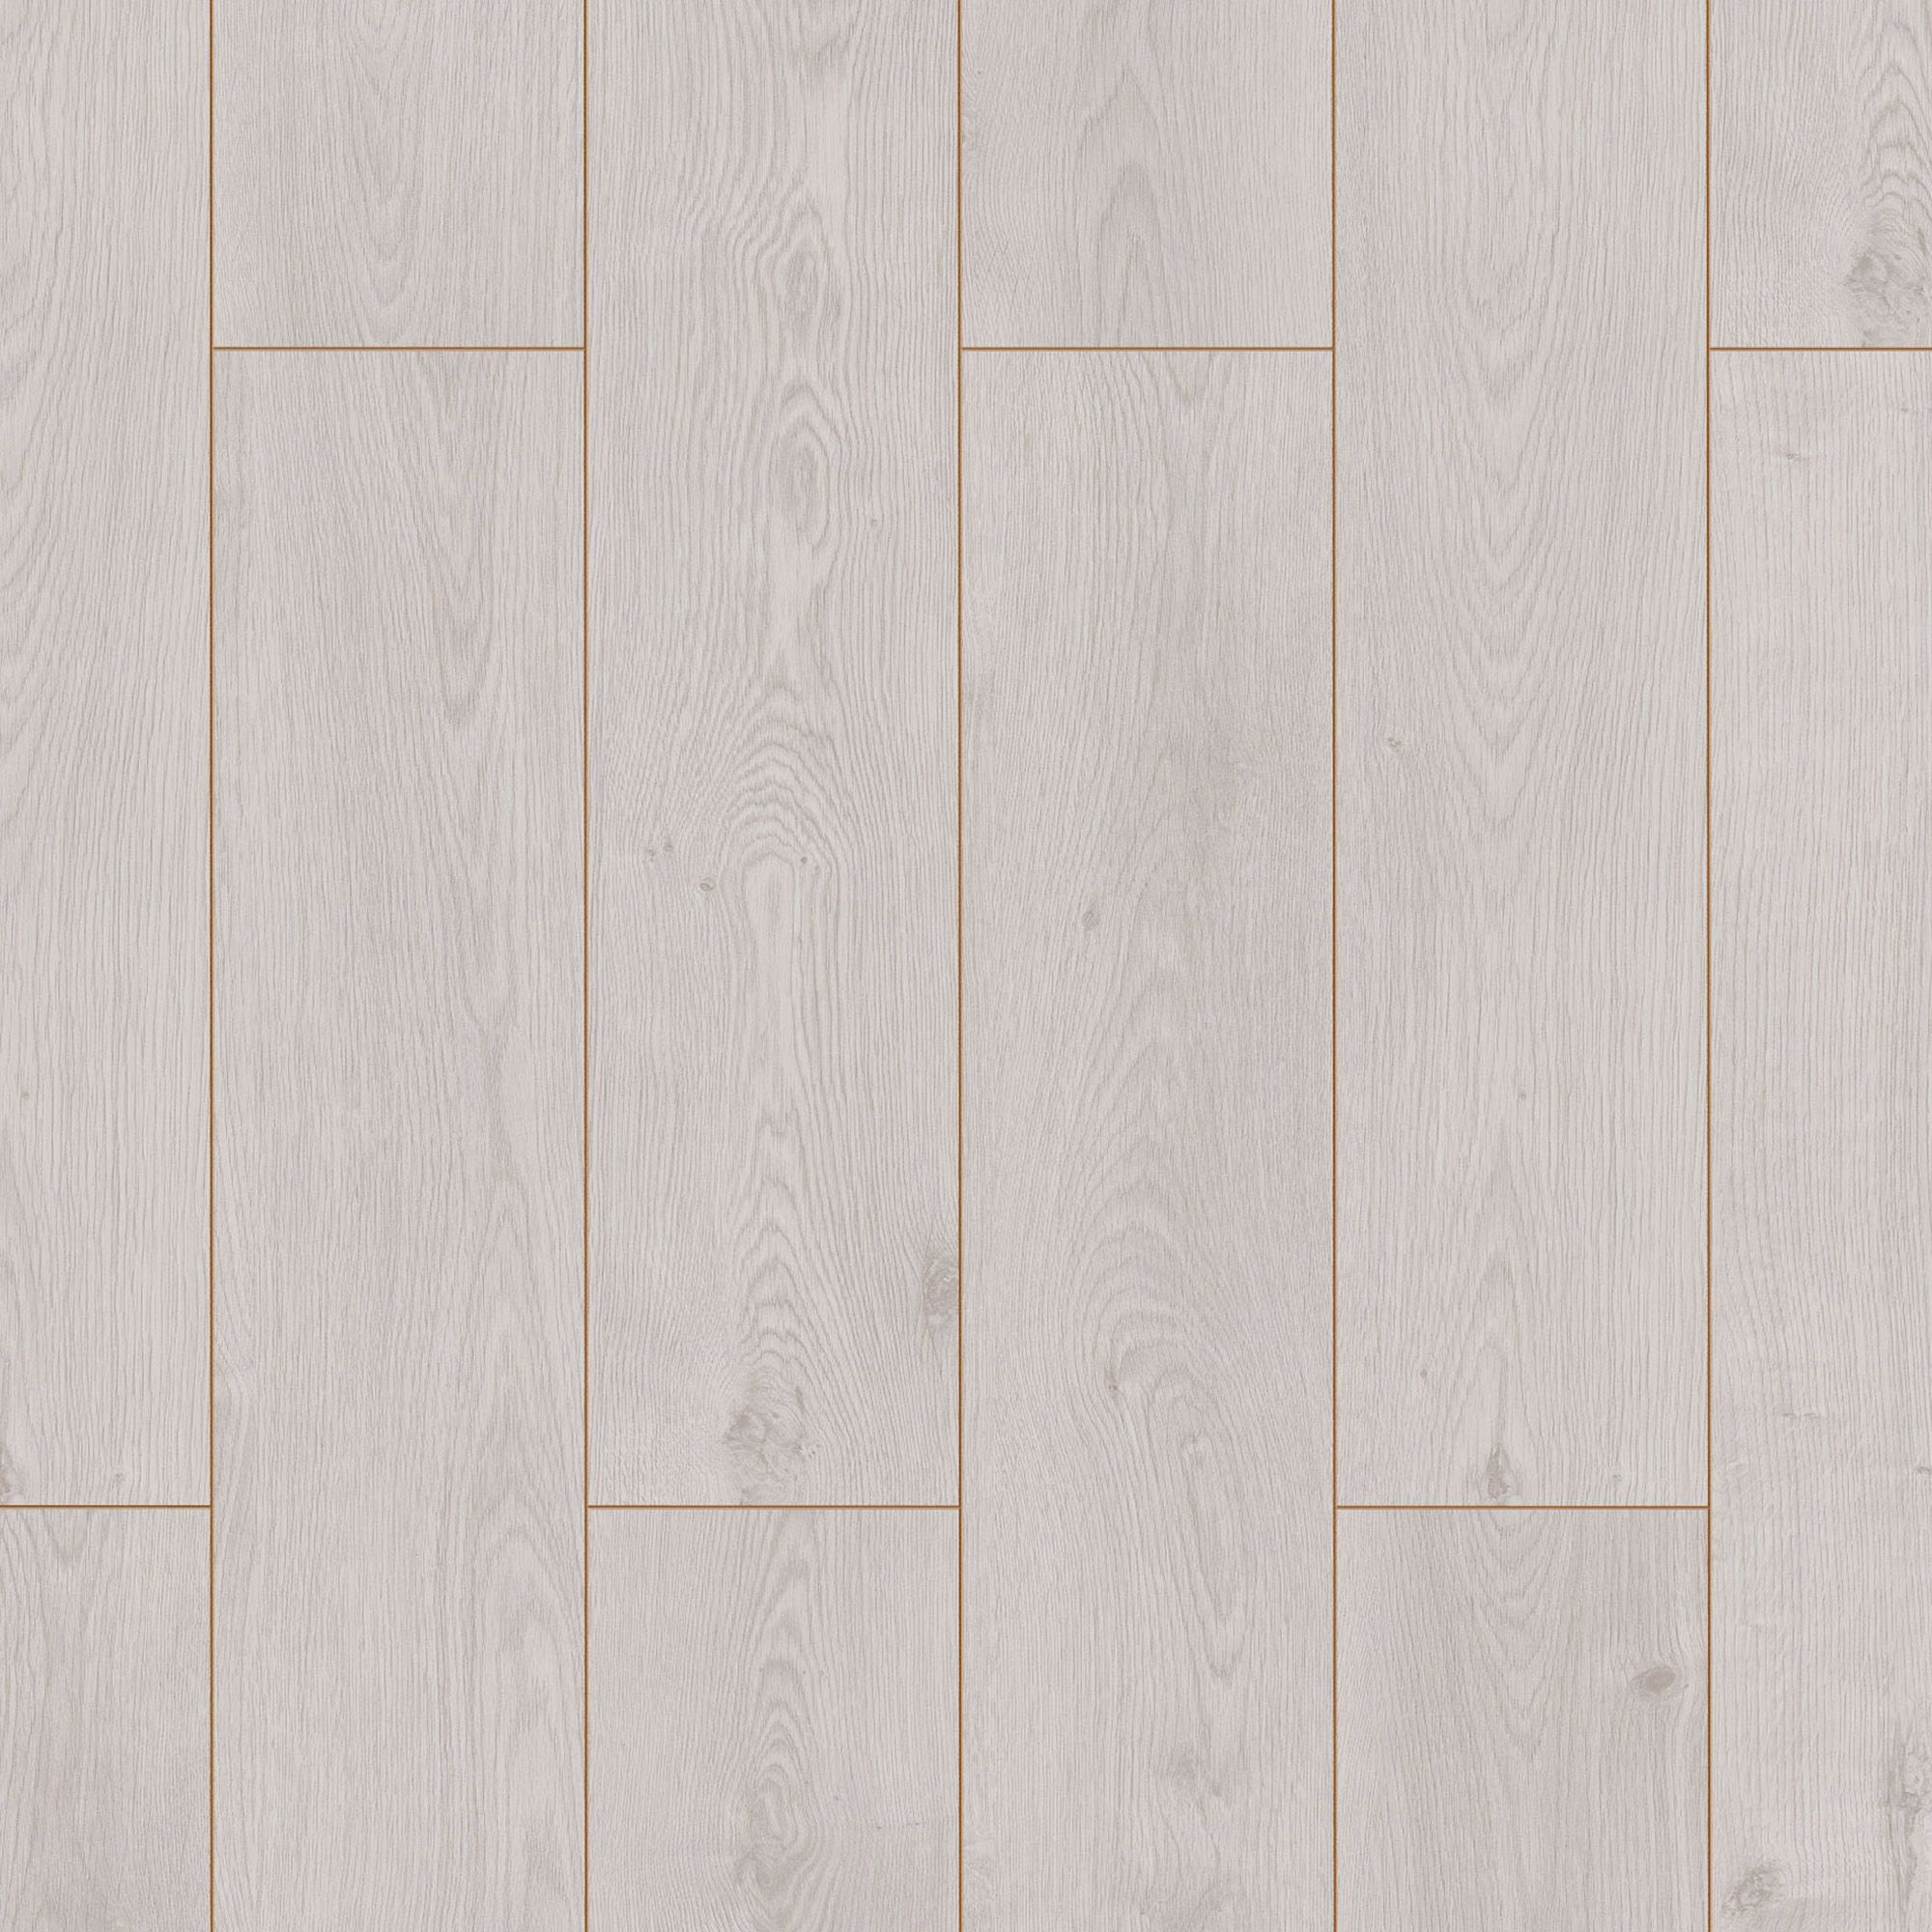 Overture Arlington White Oak Effect Laminate Flooring 1 25 M² Pack Departments Diy At B Q